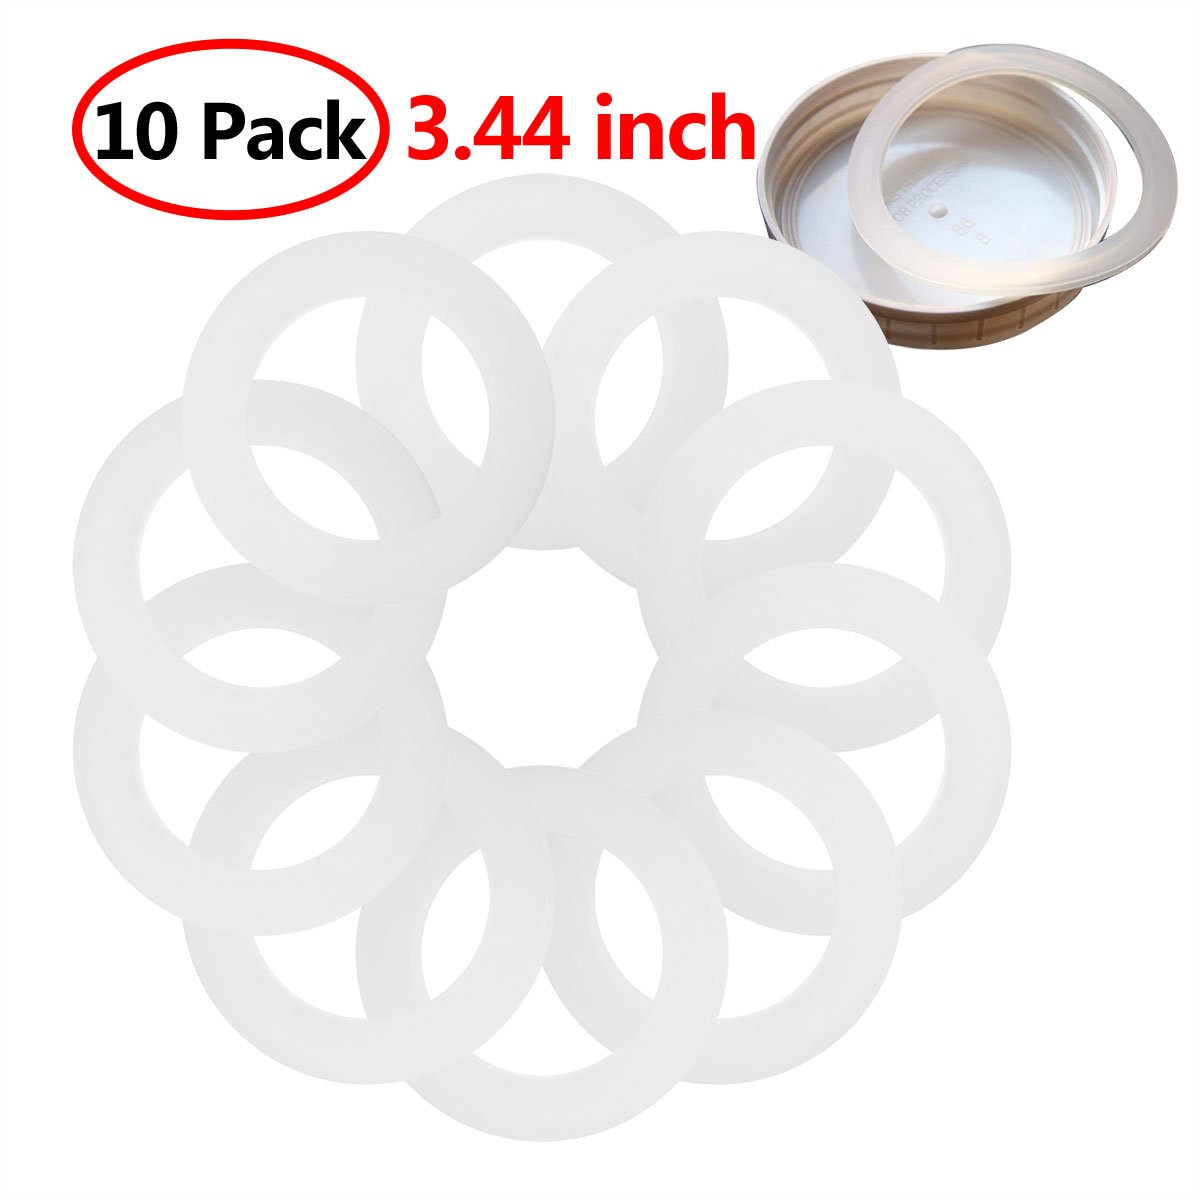 10Pcs Silicone Gasket Sealing Rings Reusable Food-Grade Airtight Rubber Seal for Mason Jar/Ball Plastic Storage Cap Caning Jar Lids White 3.44 inch by iEFiEL (Image #2)